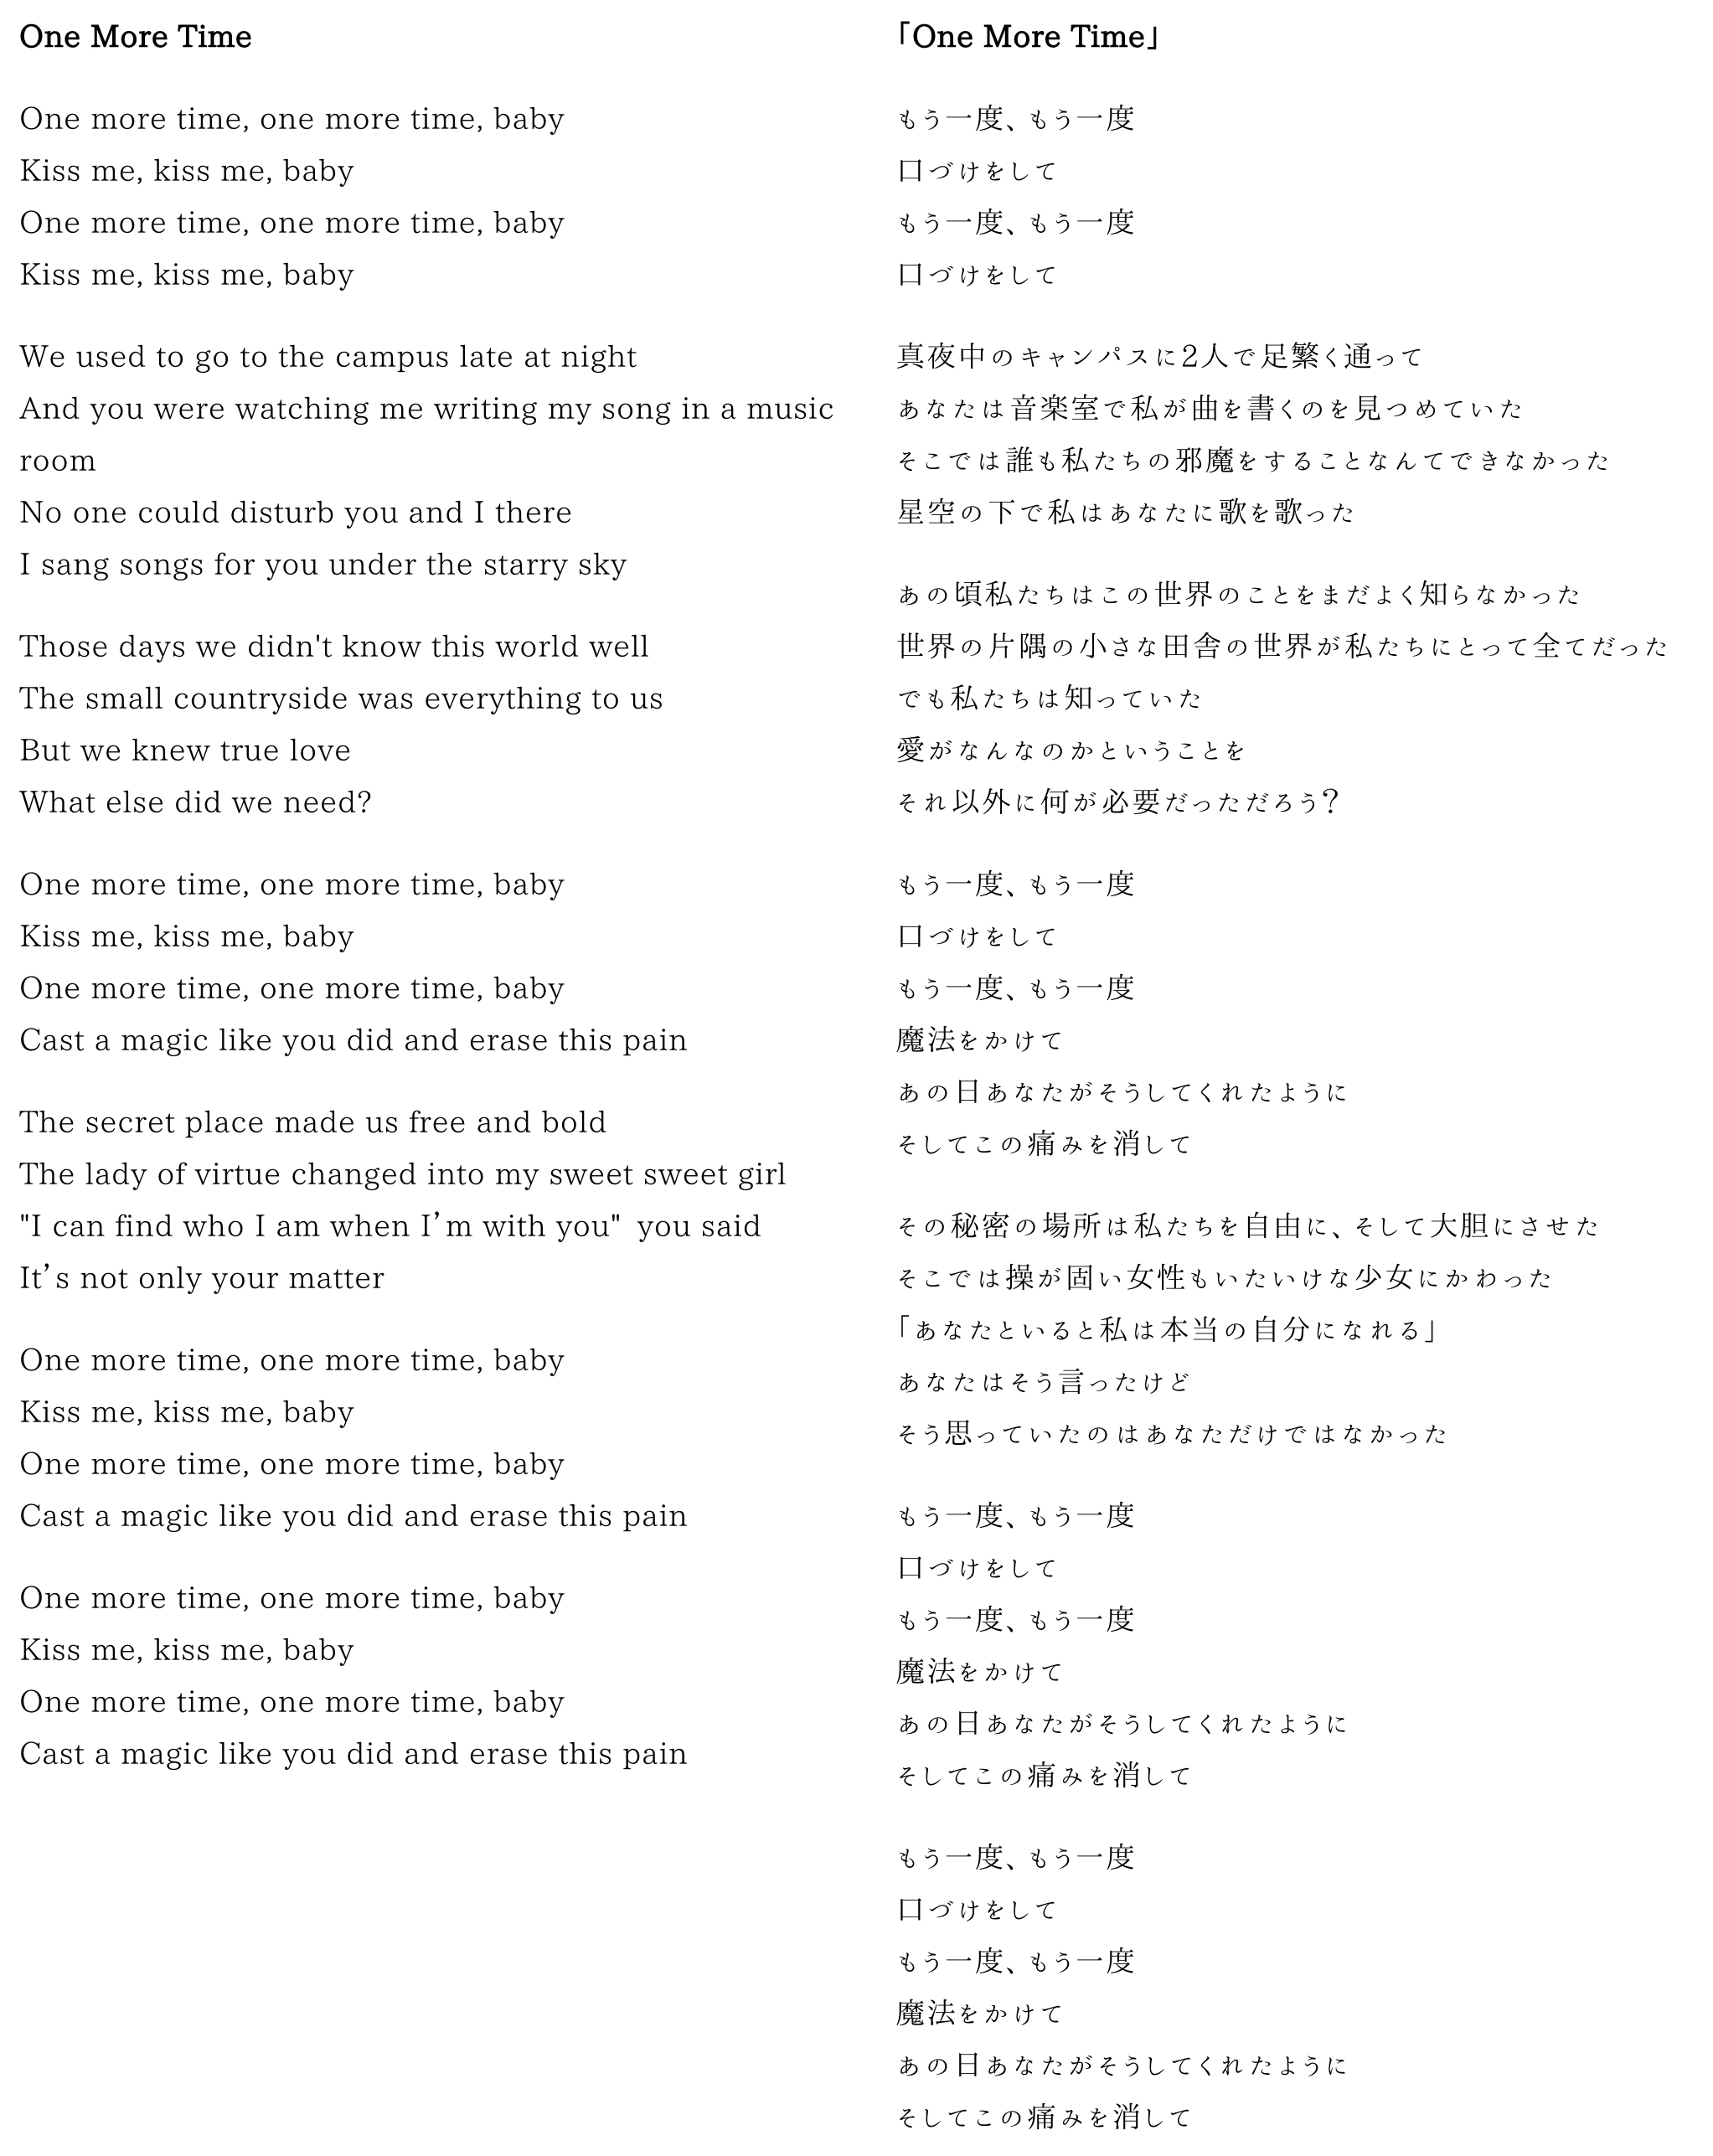 One-More-Time-Lyric-for-Web.jpg